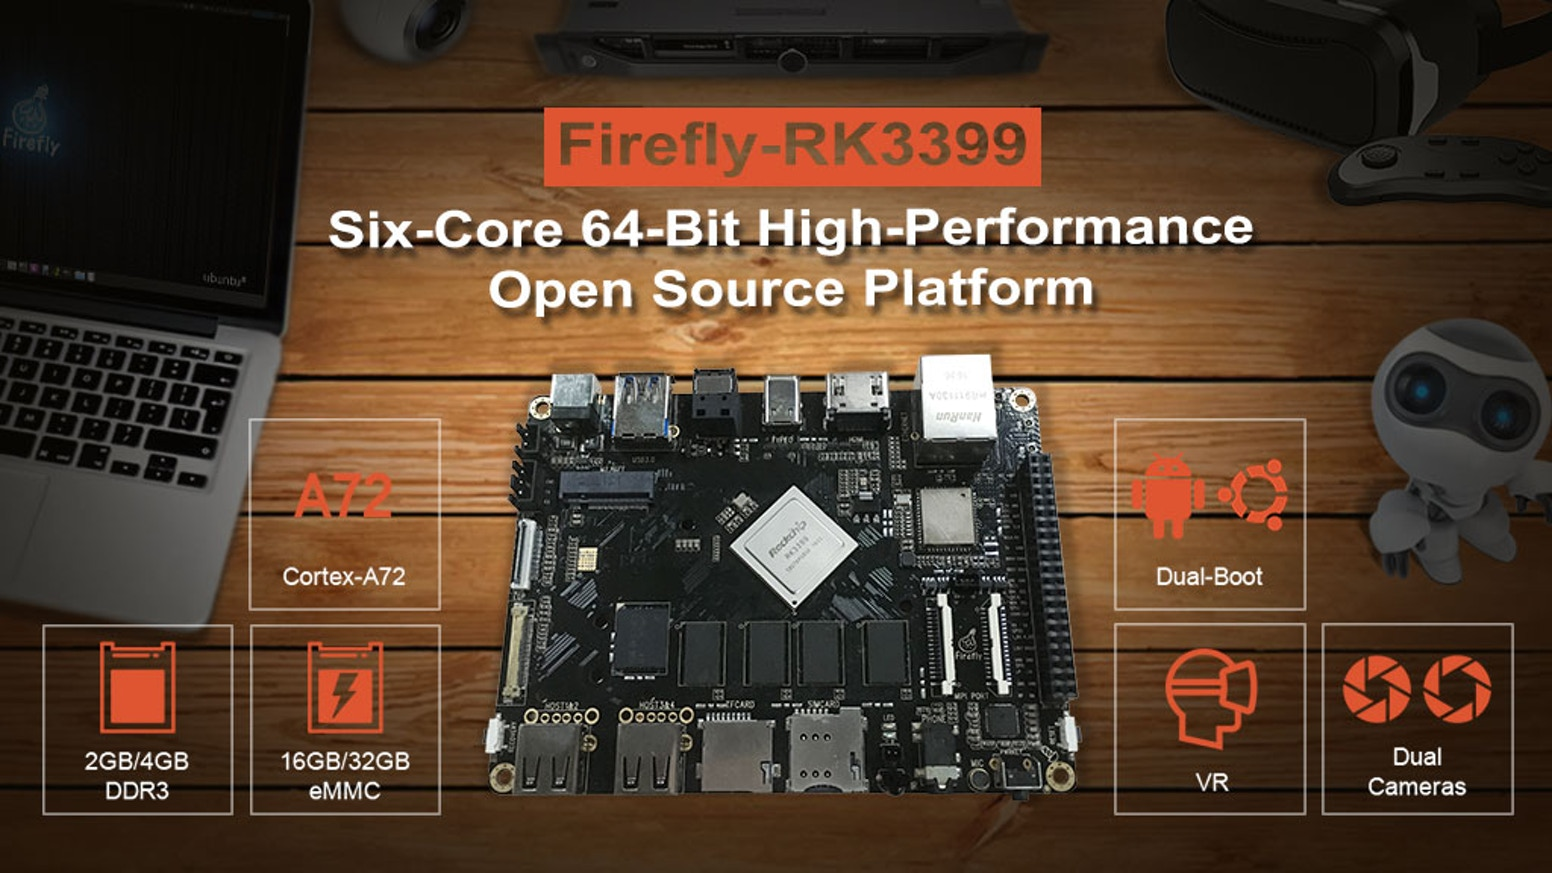 Firefly Rk3399six Core 64 Bit High Performance Platform By Electric Circuit Board Processor Tshirt With Dual Cortex A72 And Quad A53 Arm